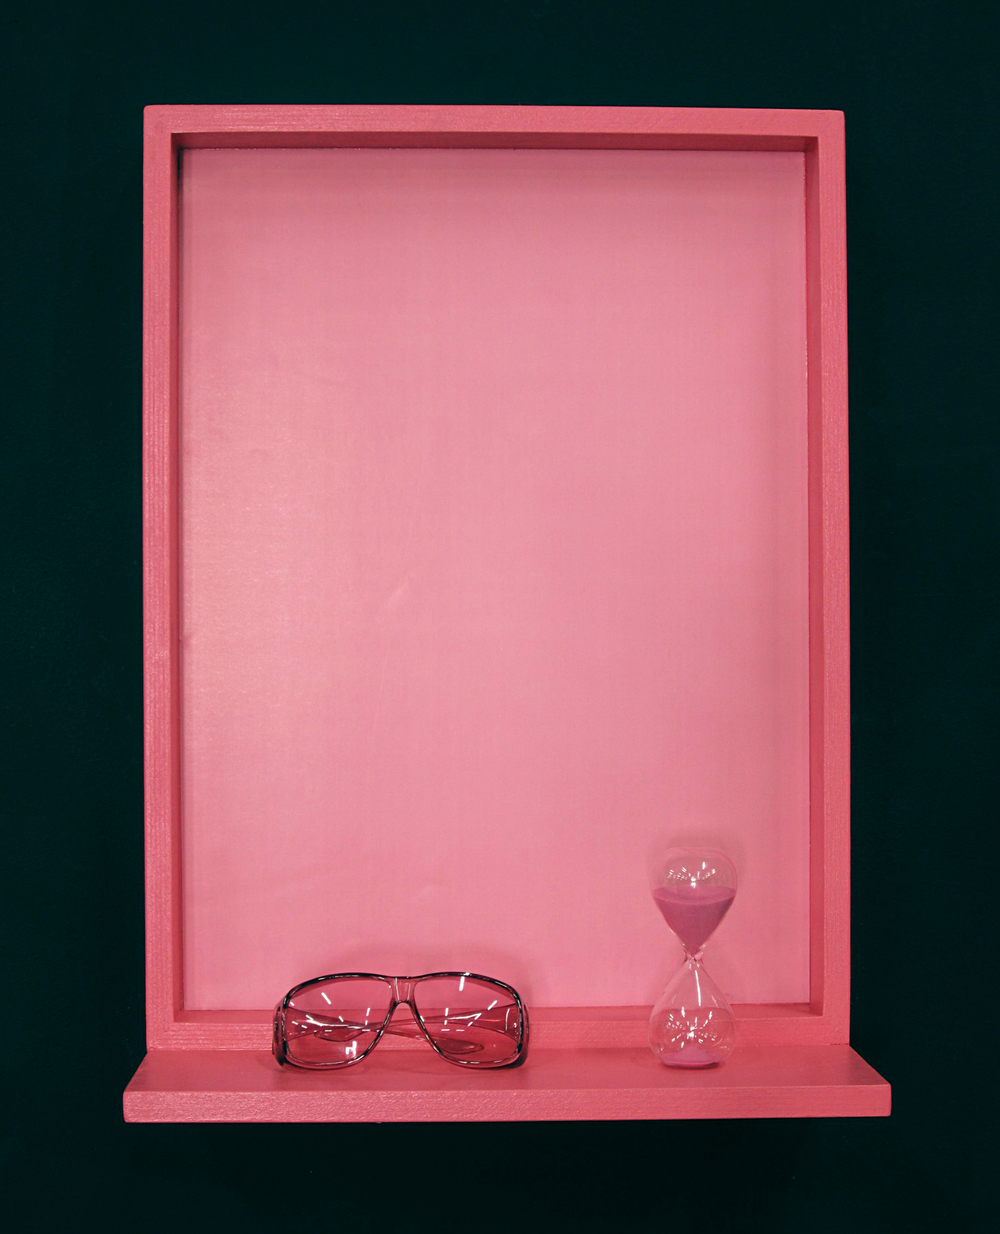 Appetite Apparatus #1 (Baker-Miller Pink, Suppressant)  2011 Wood, paint, color poster, Baker-Miller Pink color therapy glasses, 15 minute sand timer 18X24 inches, duration 15 minutes